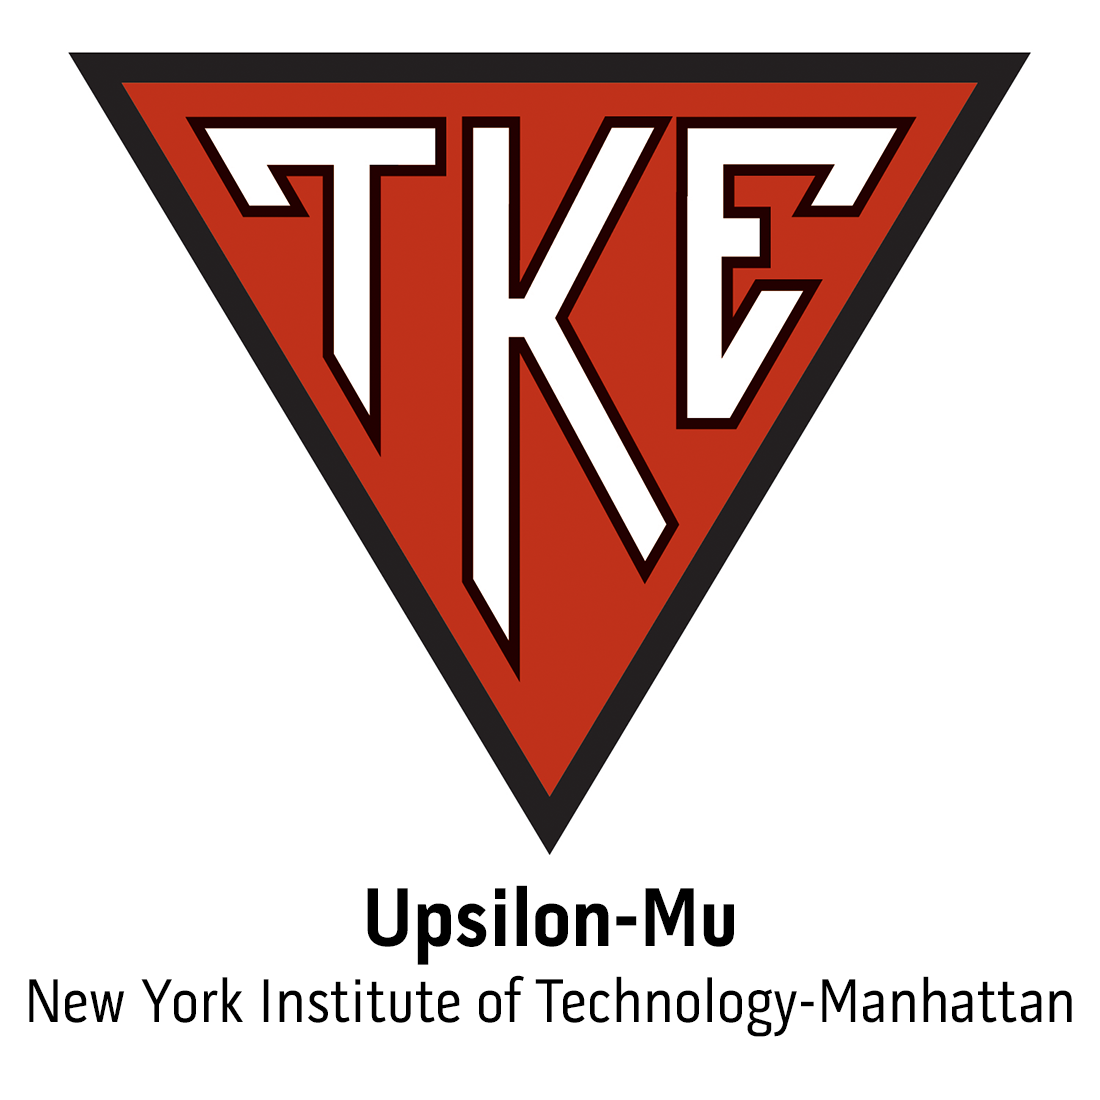 Upsilon-Mu Chapter at New York Institute of Technology-Manhattan